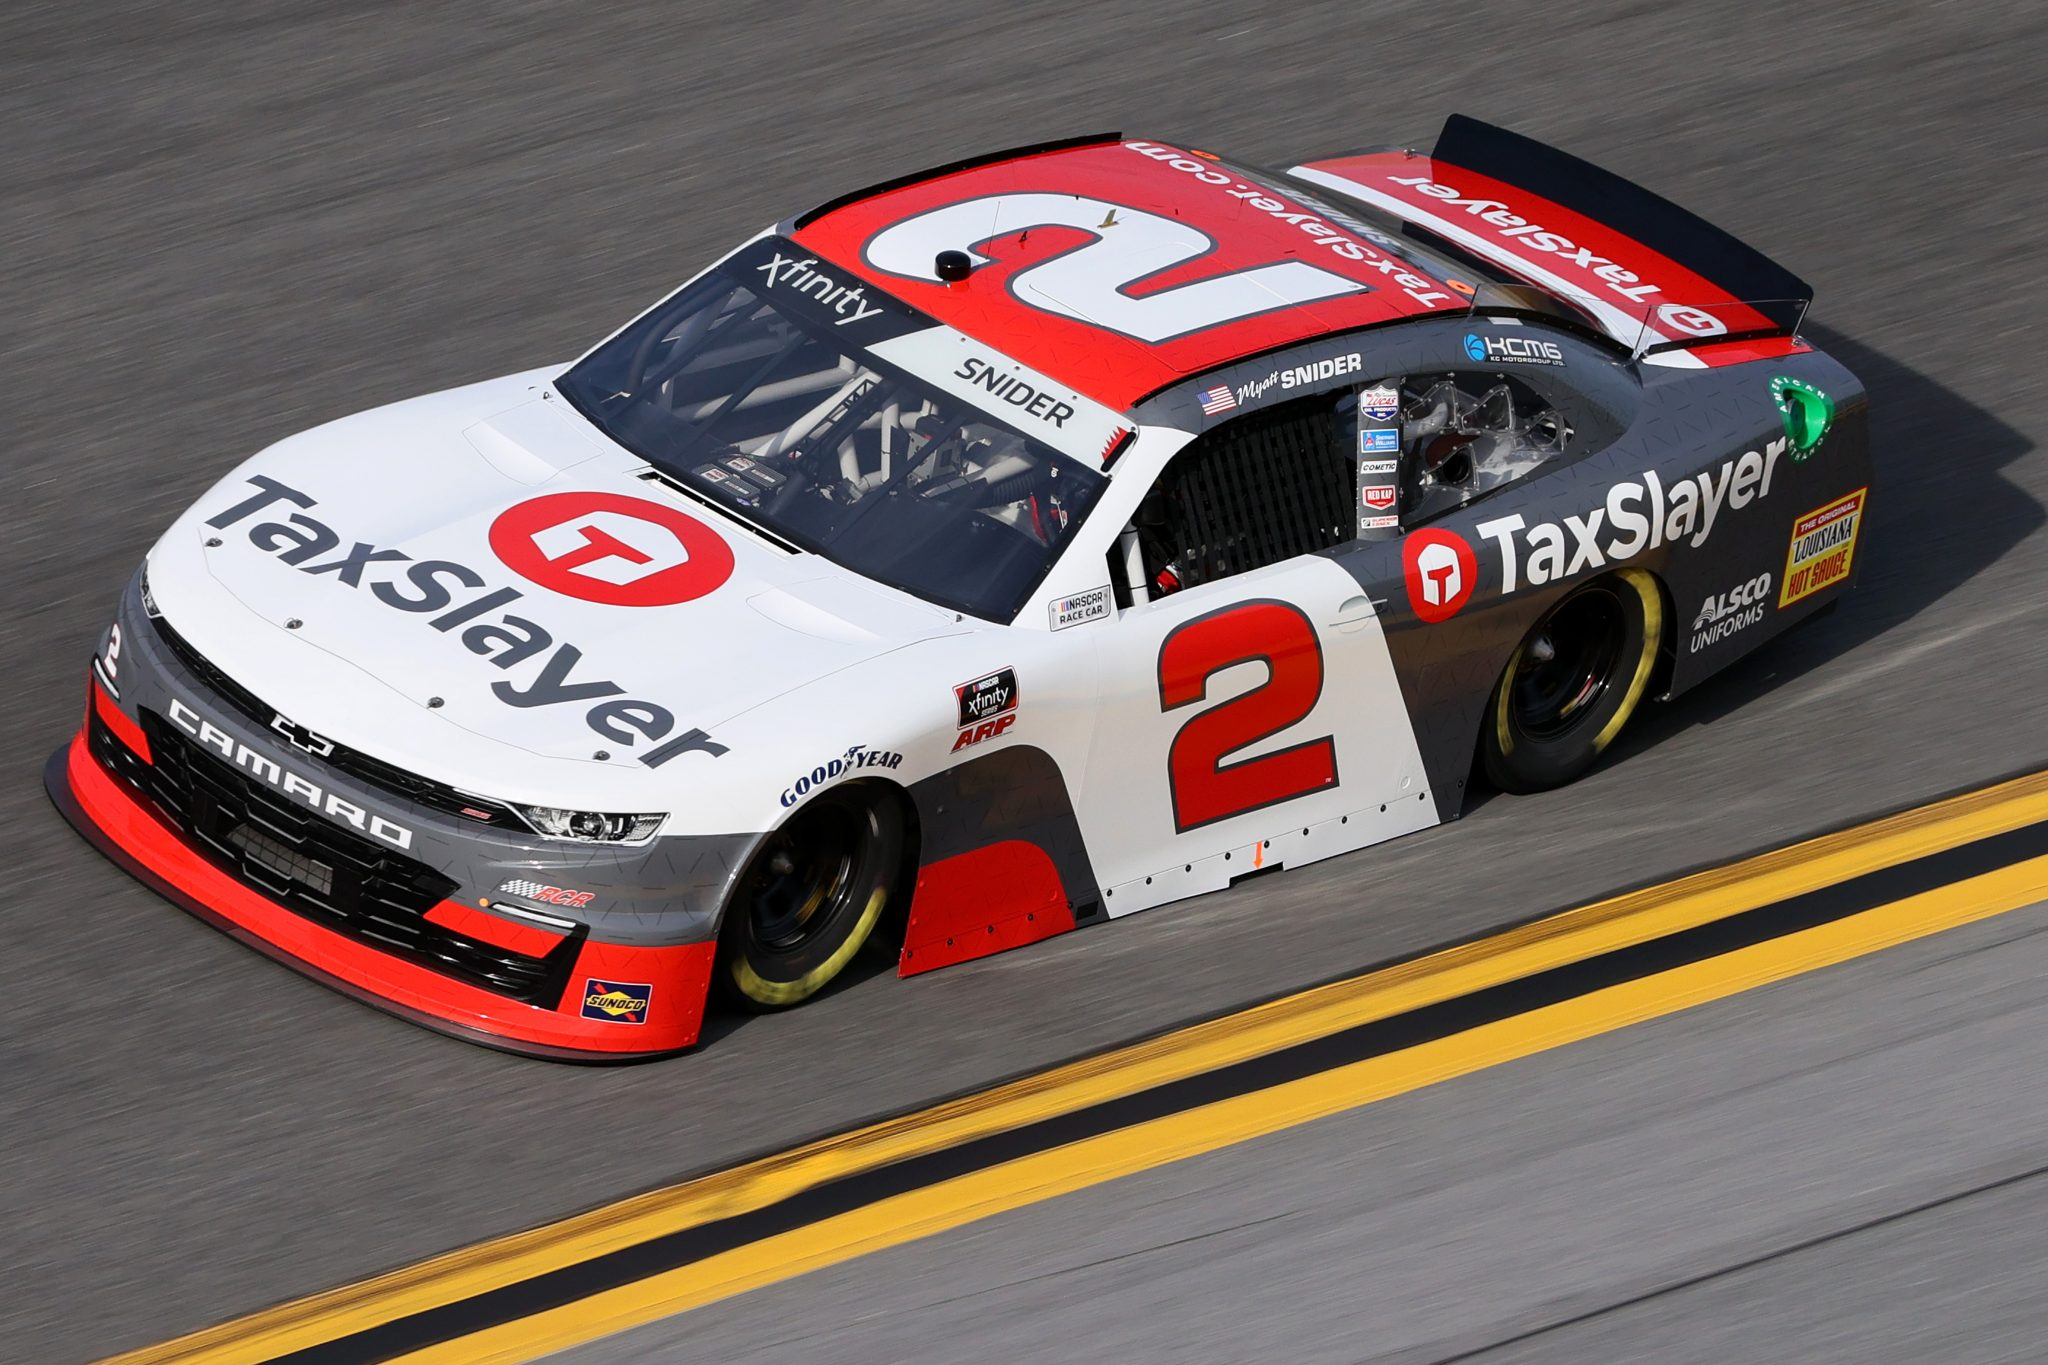 DAYTONA BEACH, FLORIDA - FEBRUARY 12: Myatt Snider, driver of the #2 TaxSlayer Chevrolet, practices for the NASCAR Xfinity Series Beef. It's What's For Dinner. 300 at Daytona International Speedway on February 12, 2021 in Daytona Beach, Florida. (Photo by James Gilbert/Getty Images) | Getty Images